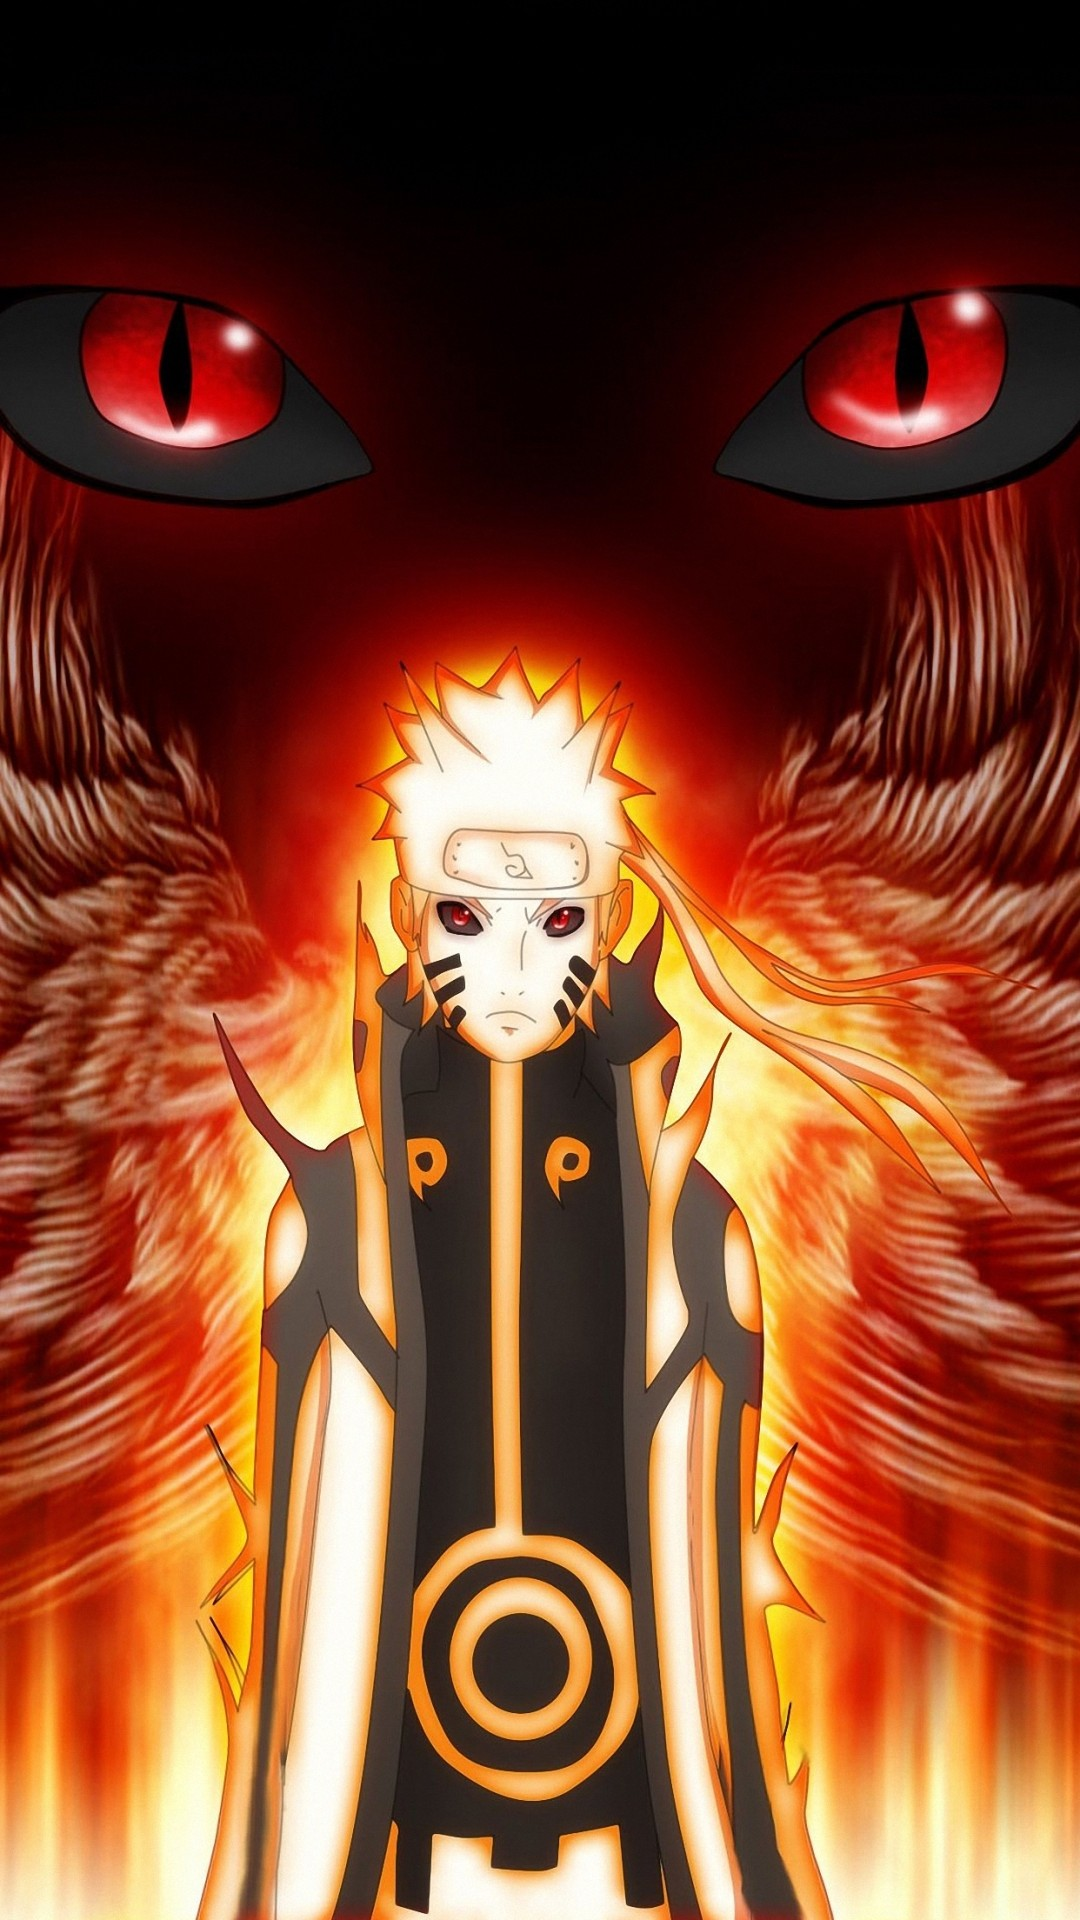 naruto mobile hd wallpaper download